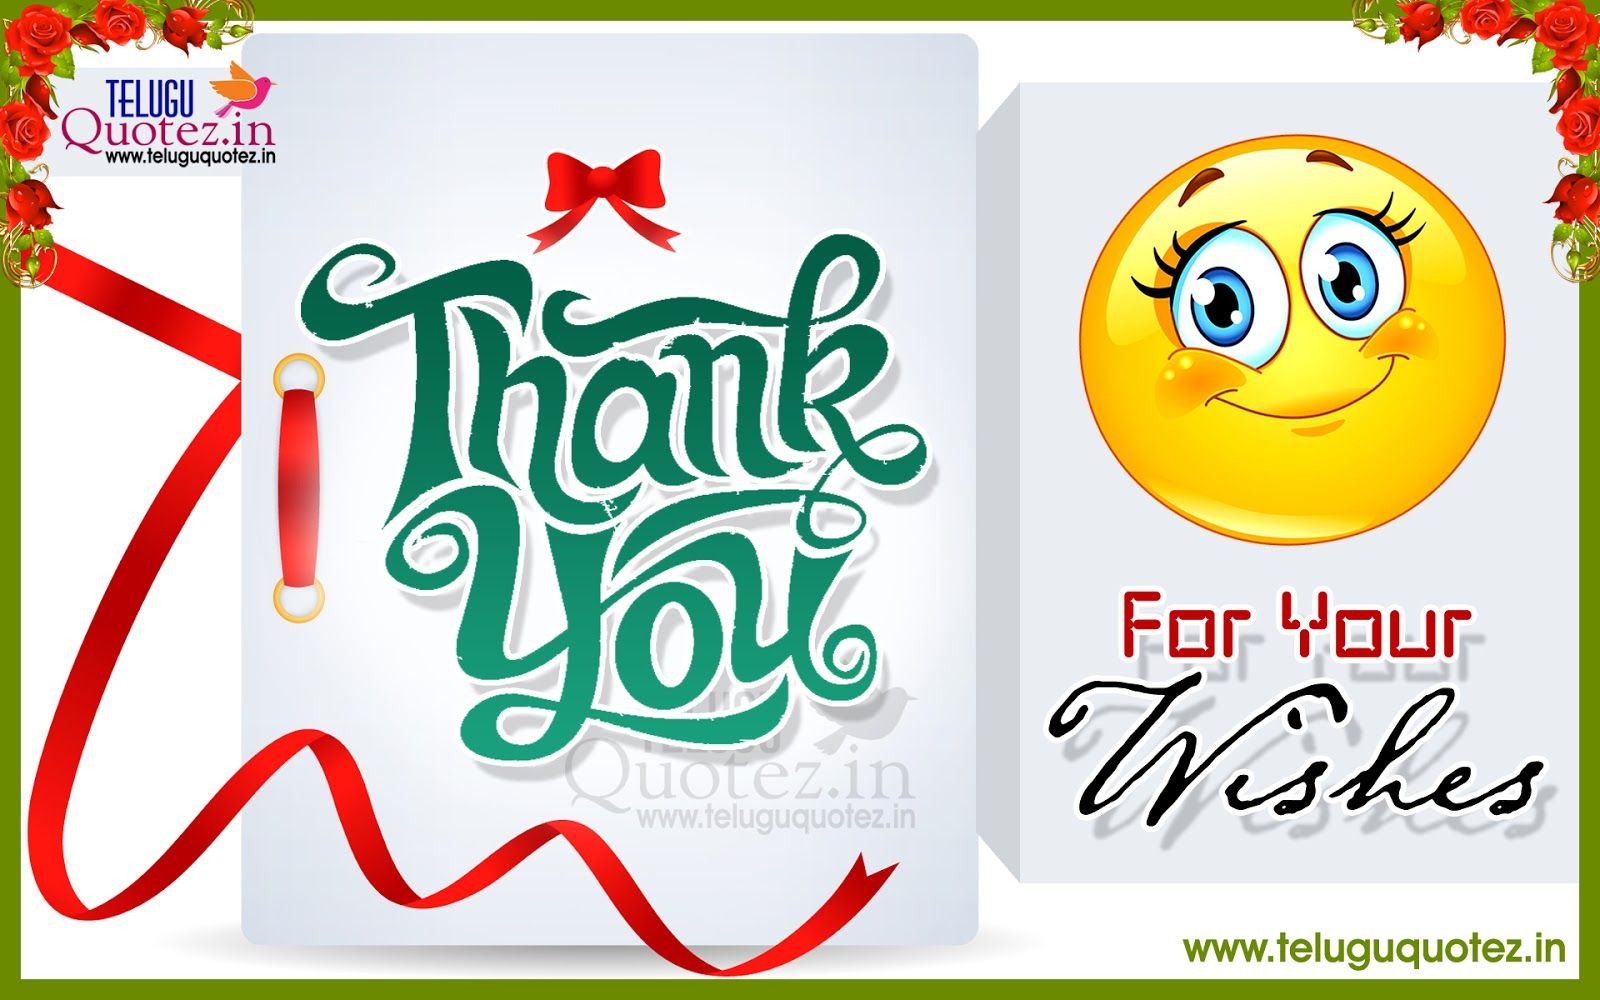 Thank you friend quotes for all wishes in english